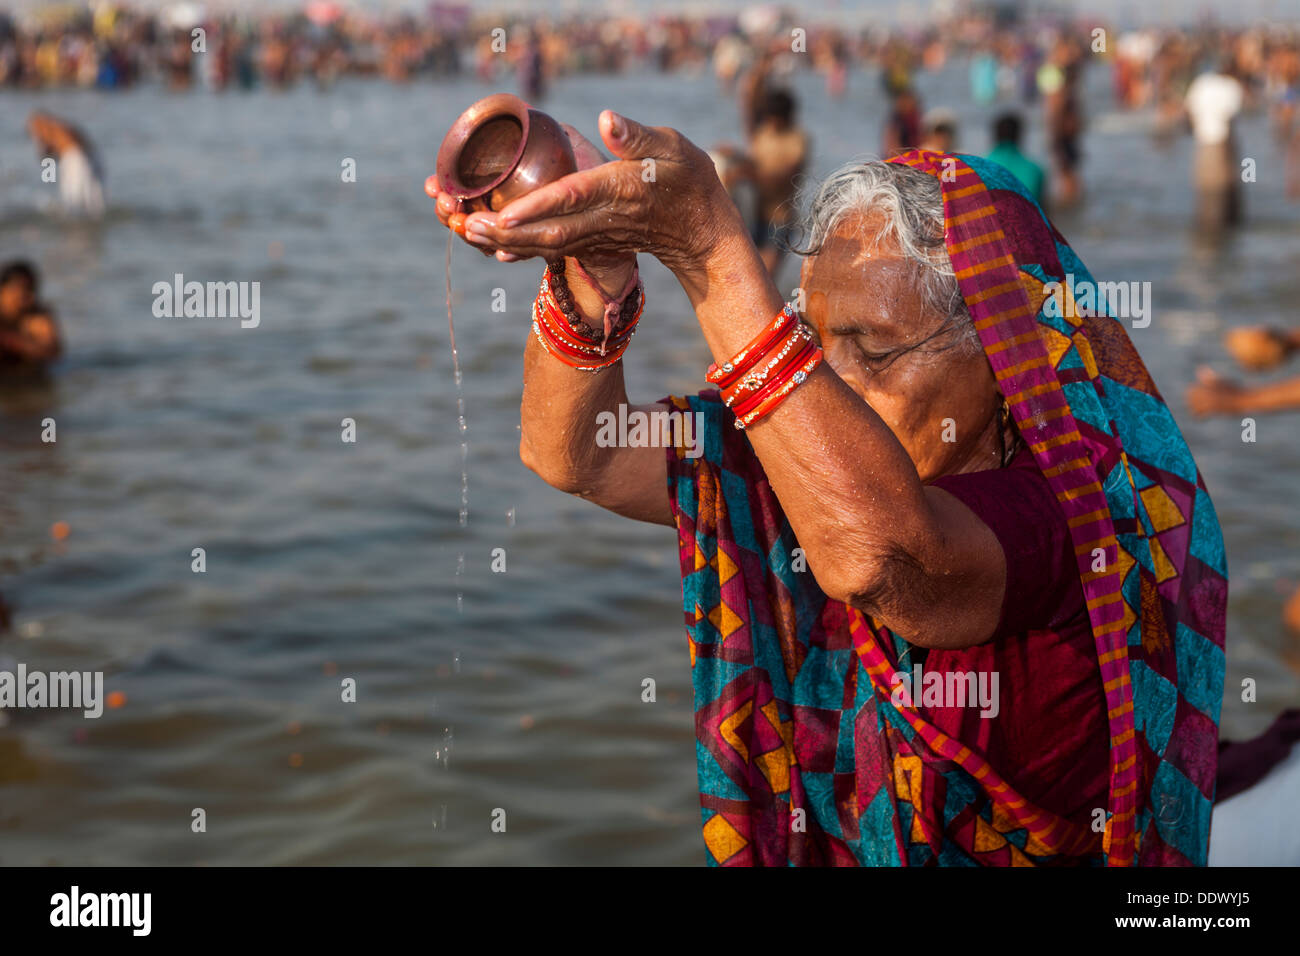 Devotes and Pilgrims taking holy dip in Ganga during the auspicious day at Kumbh Mela 2013, Allahabad, UP India Stock Photo